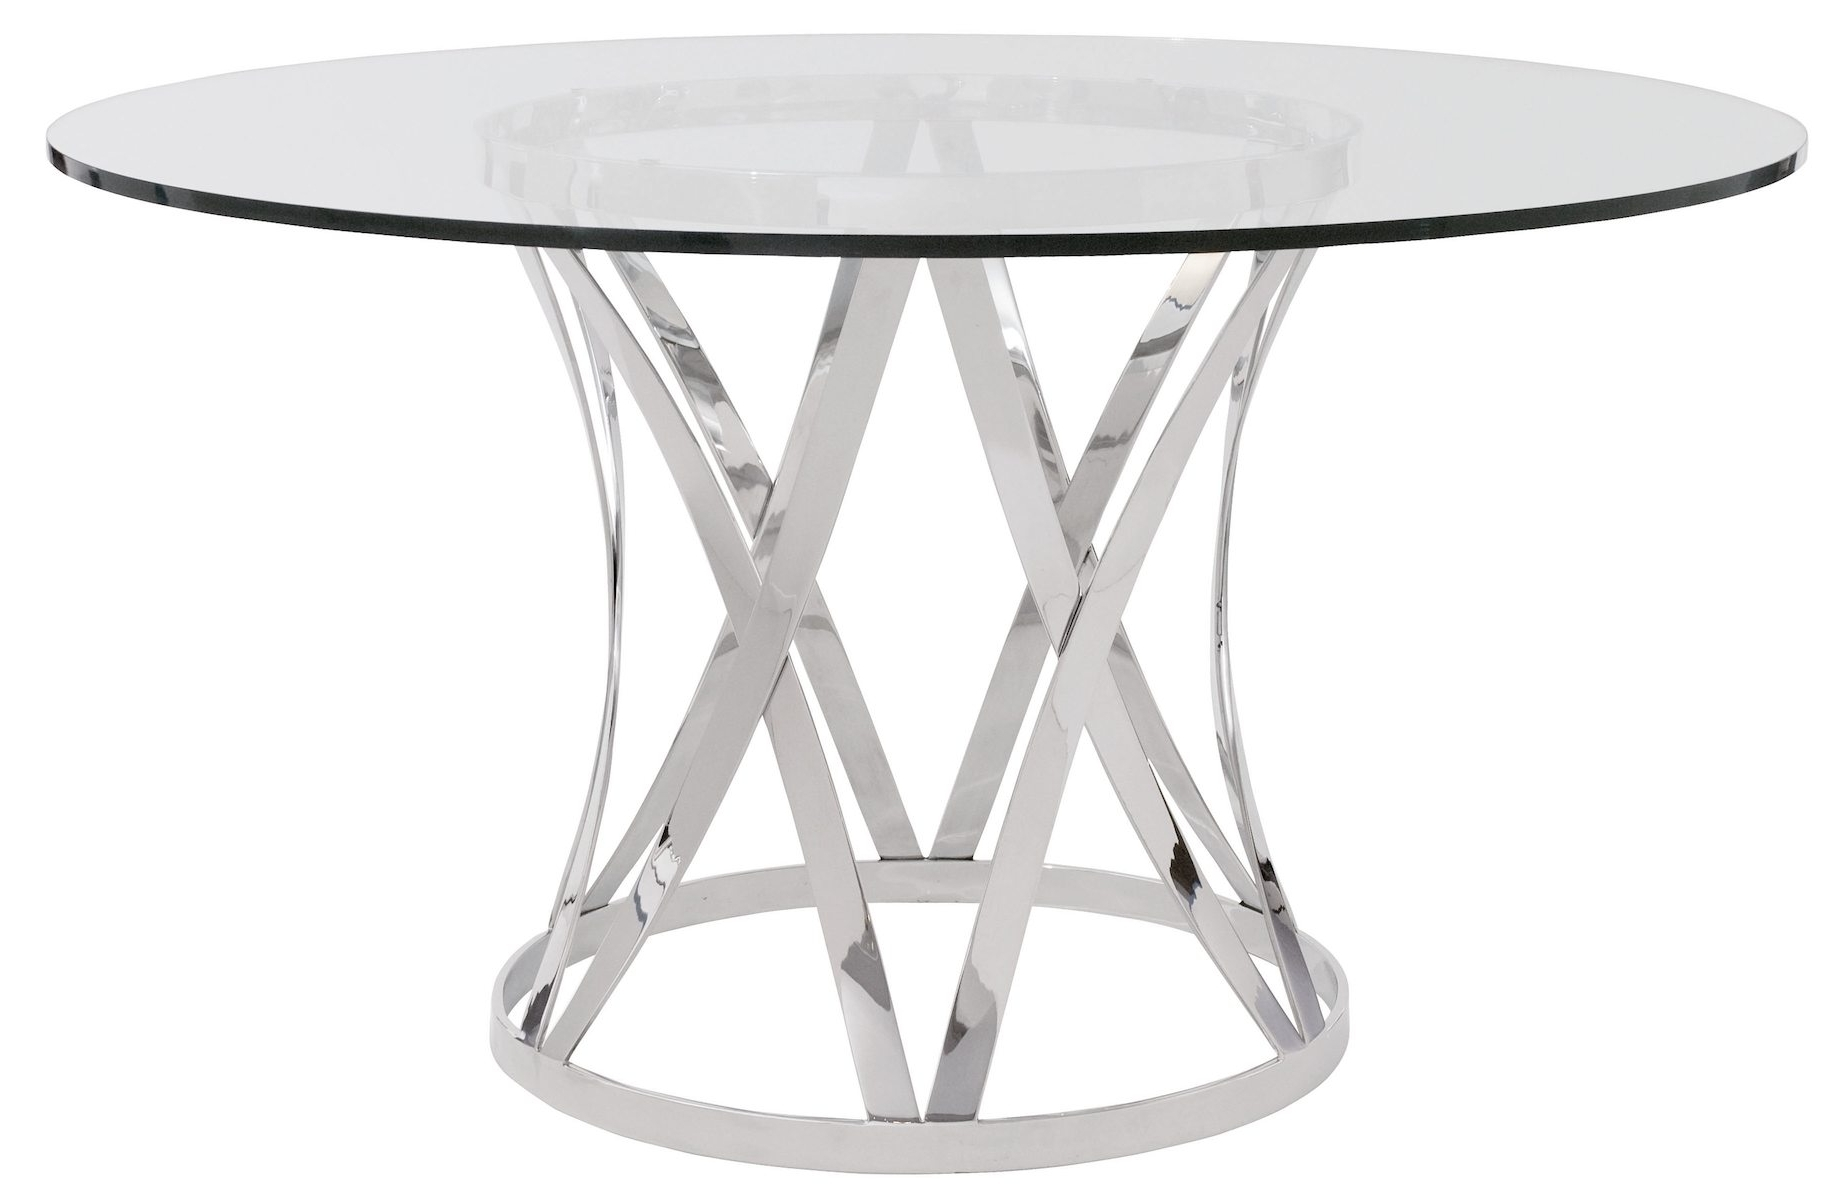 2018 Chrome Glass Dining Tables Pertaining To Awesome Round Eased Edge Profile Glass Dining Table With Polished (View 22 of 25)